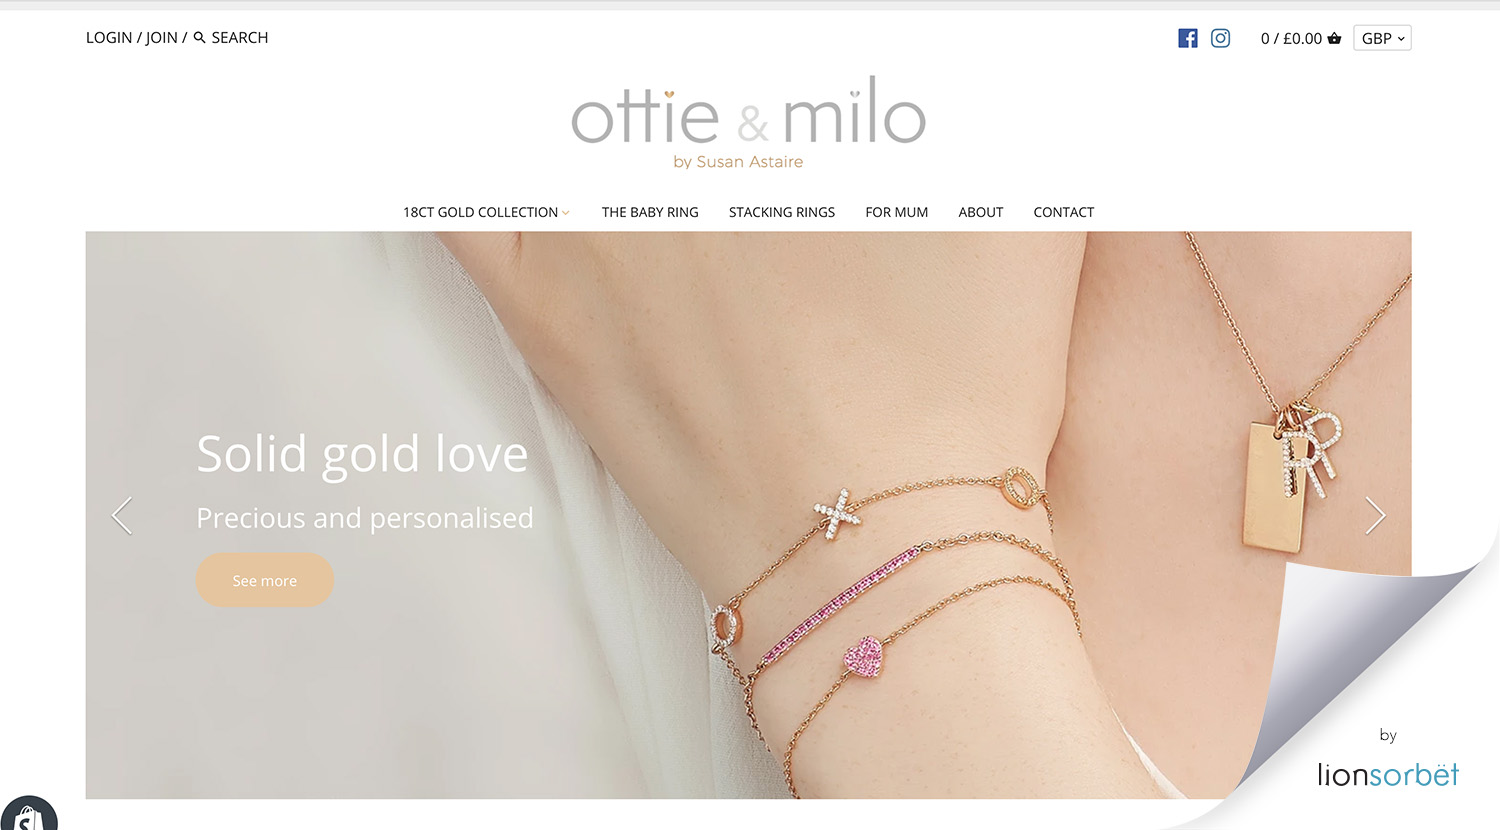 ottie and milo jewellery website.jpg